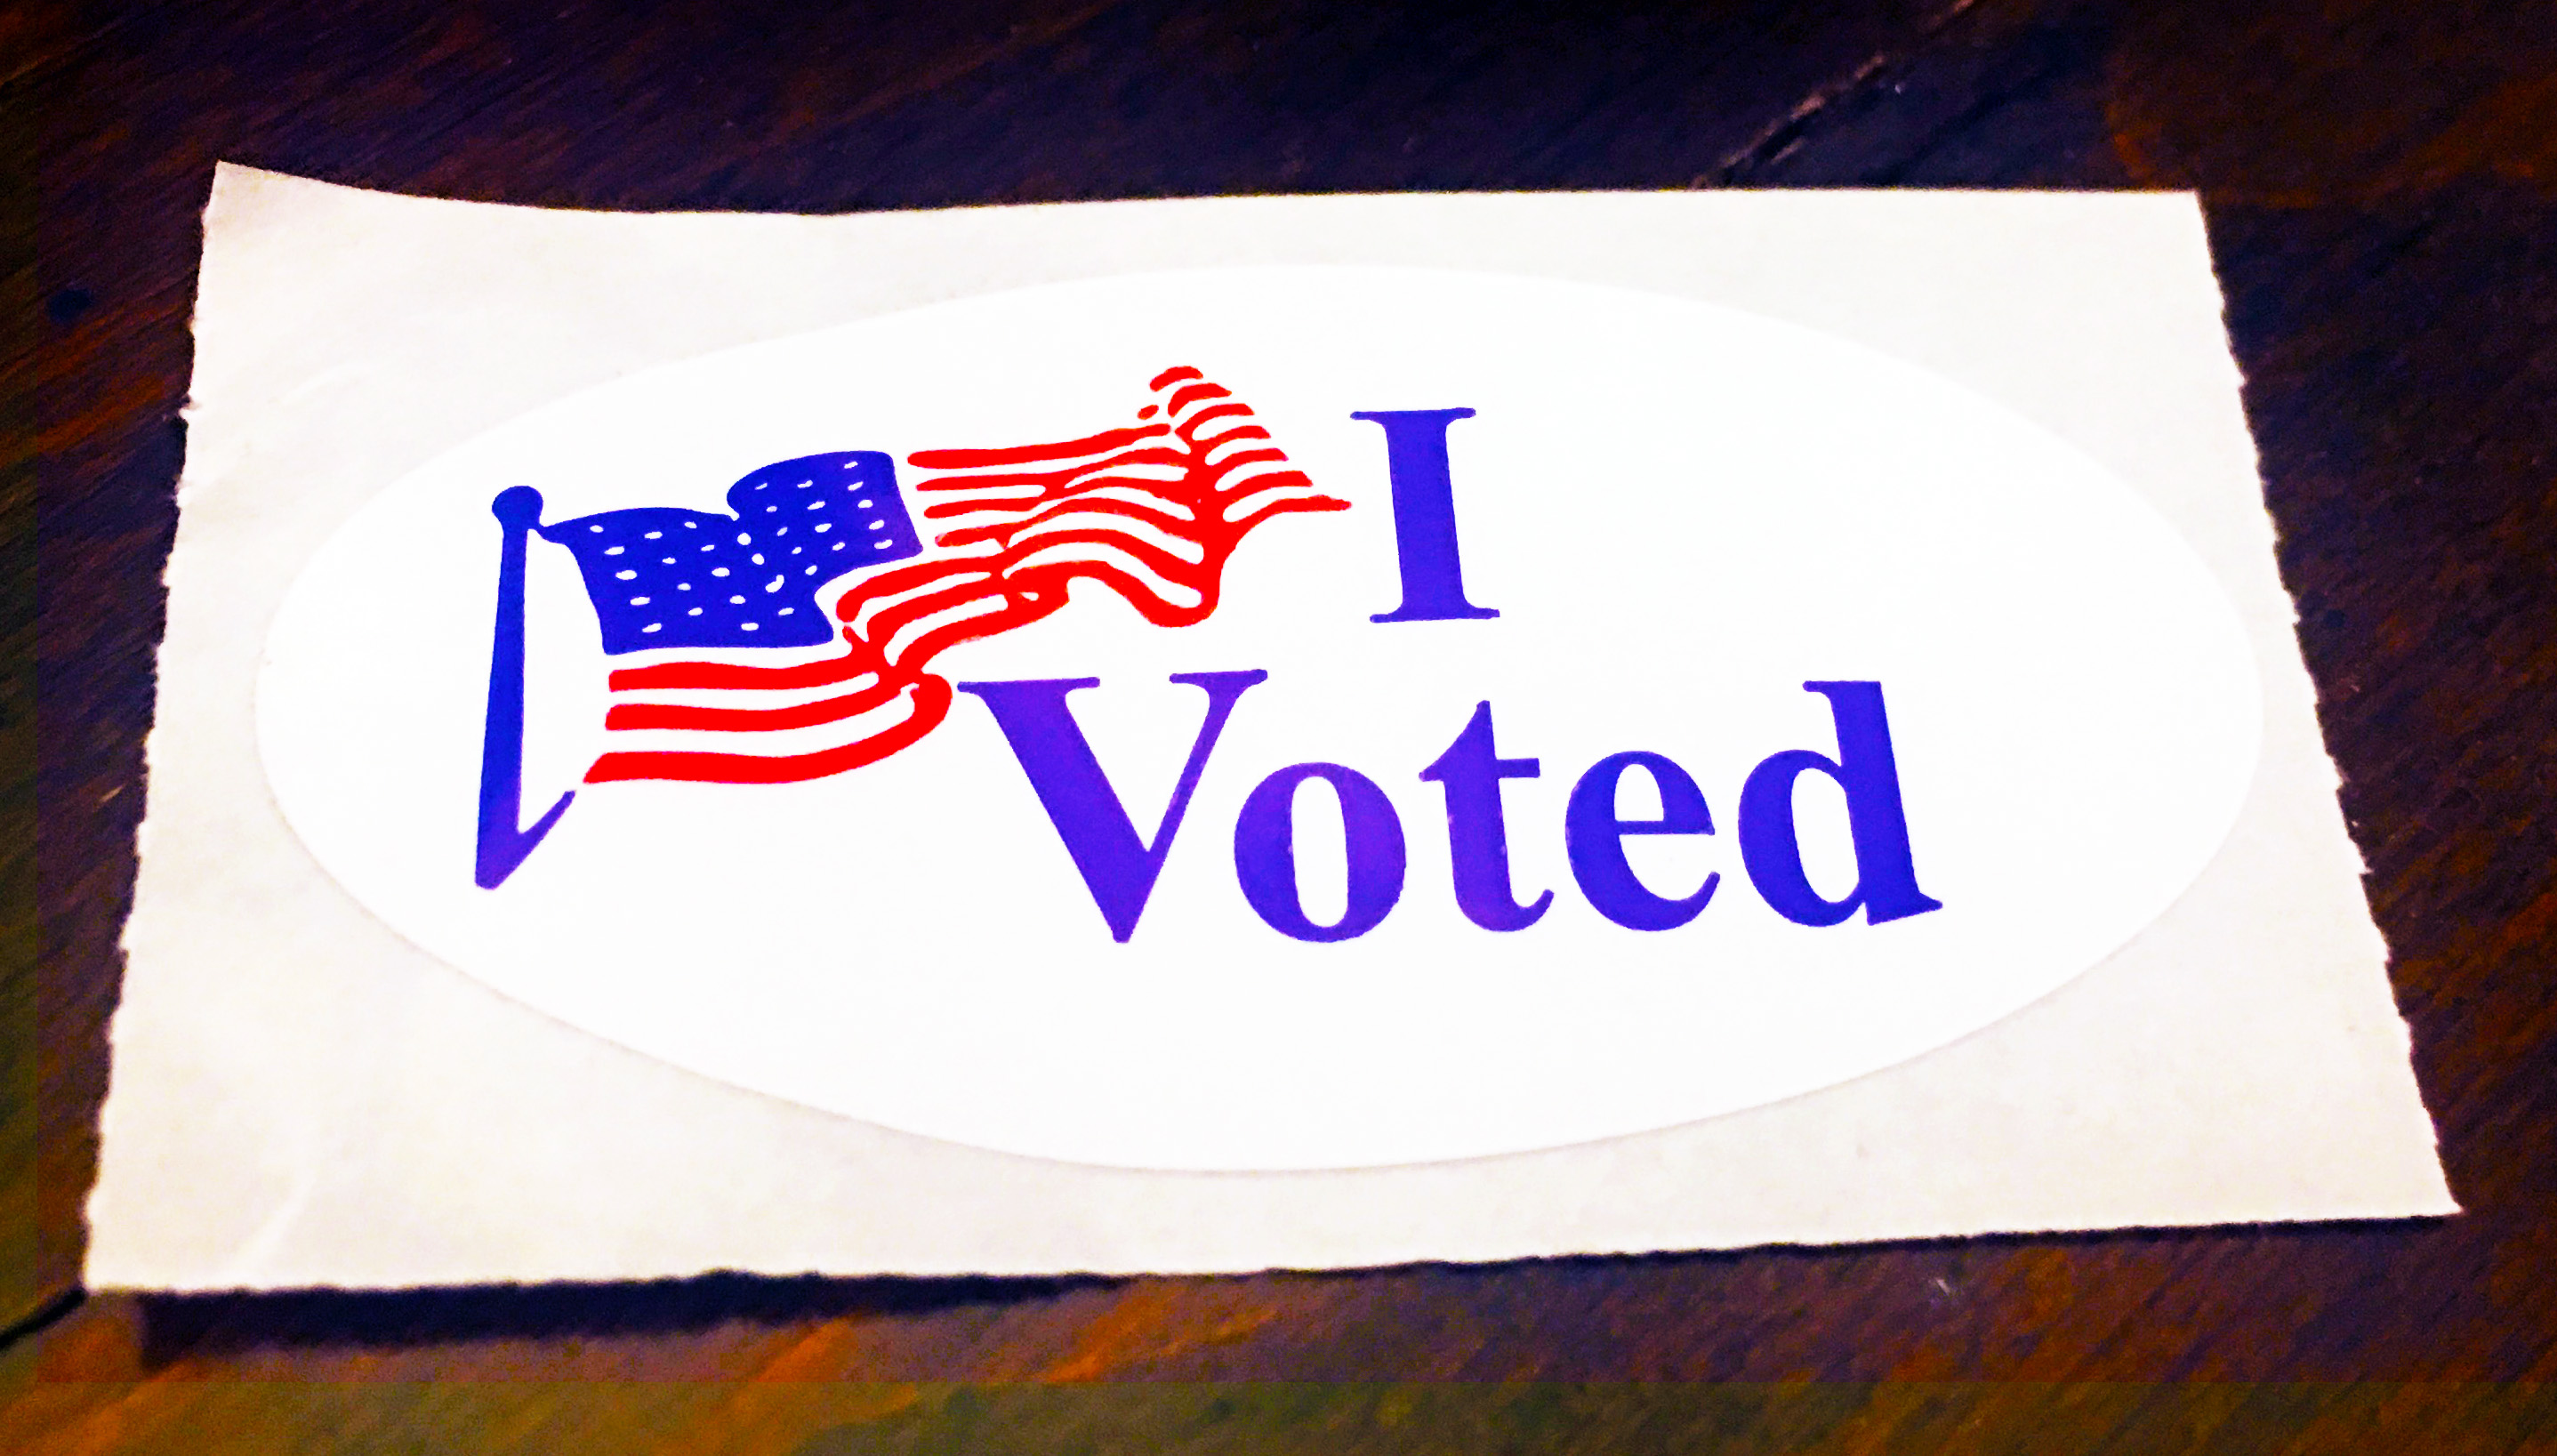 We hope you VOTED today! - November 6, 2018